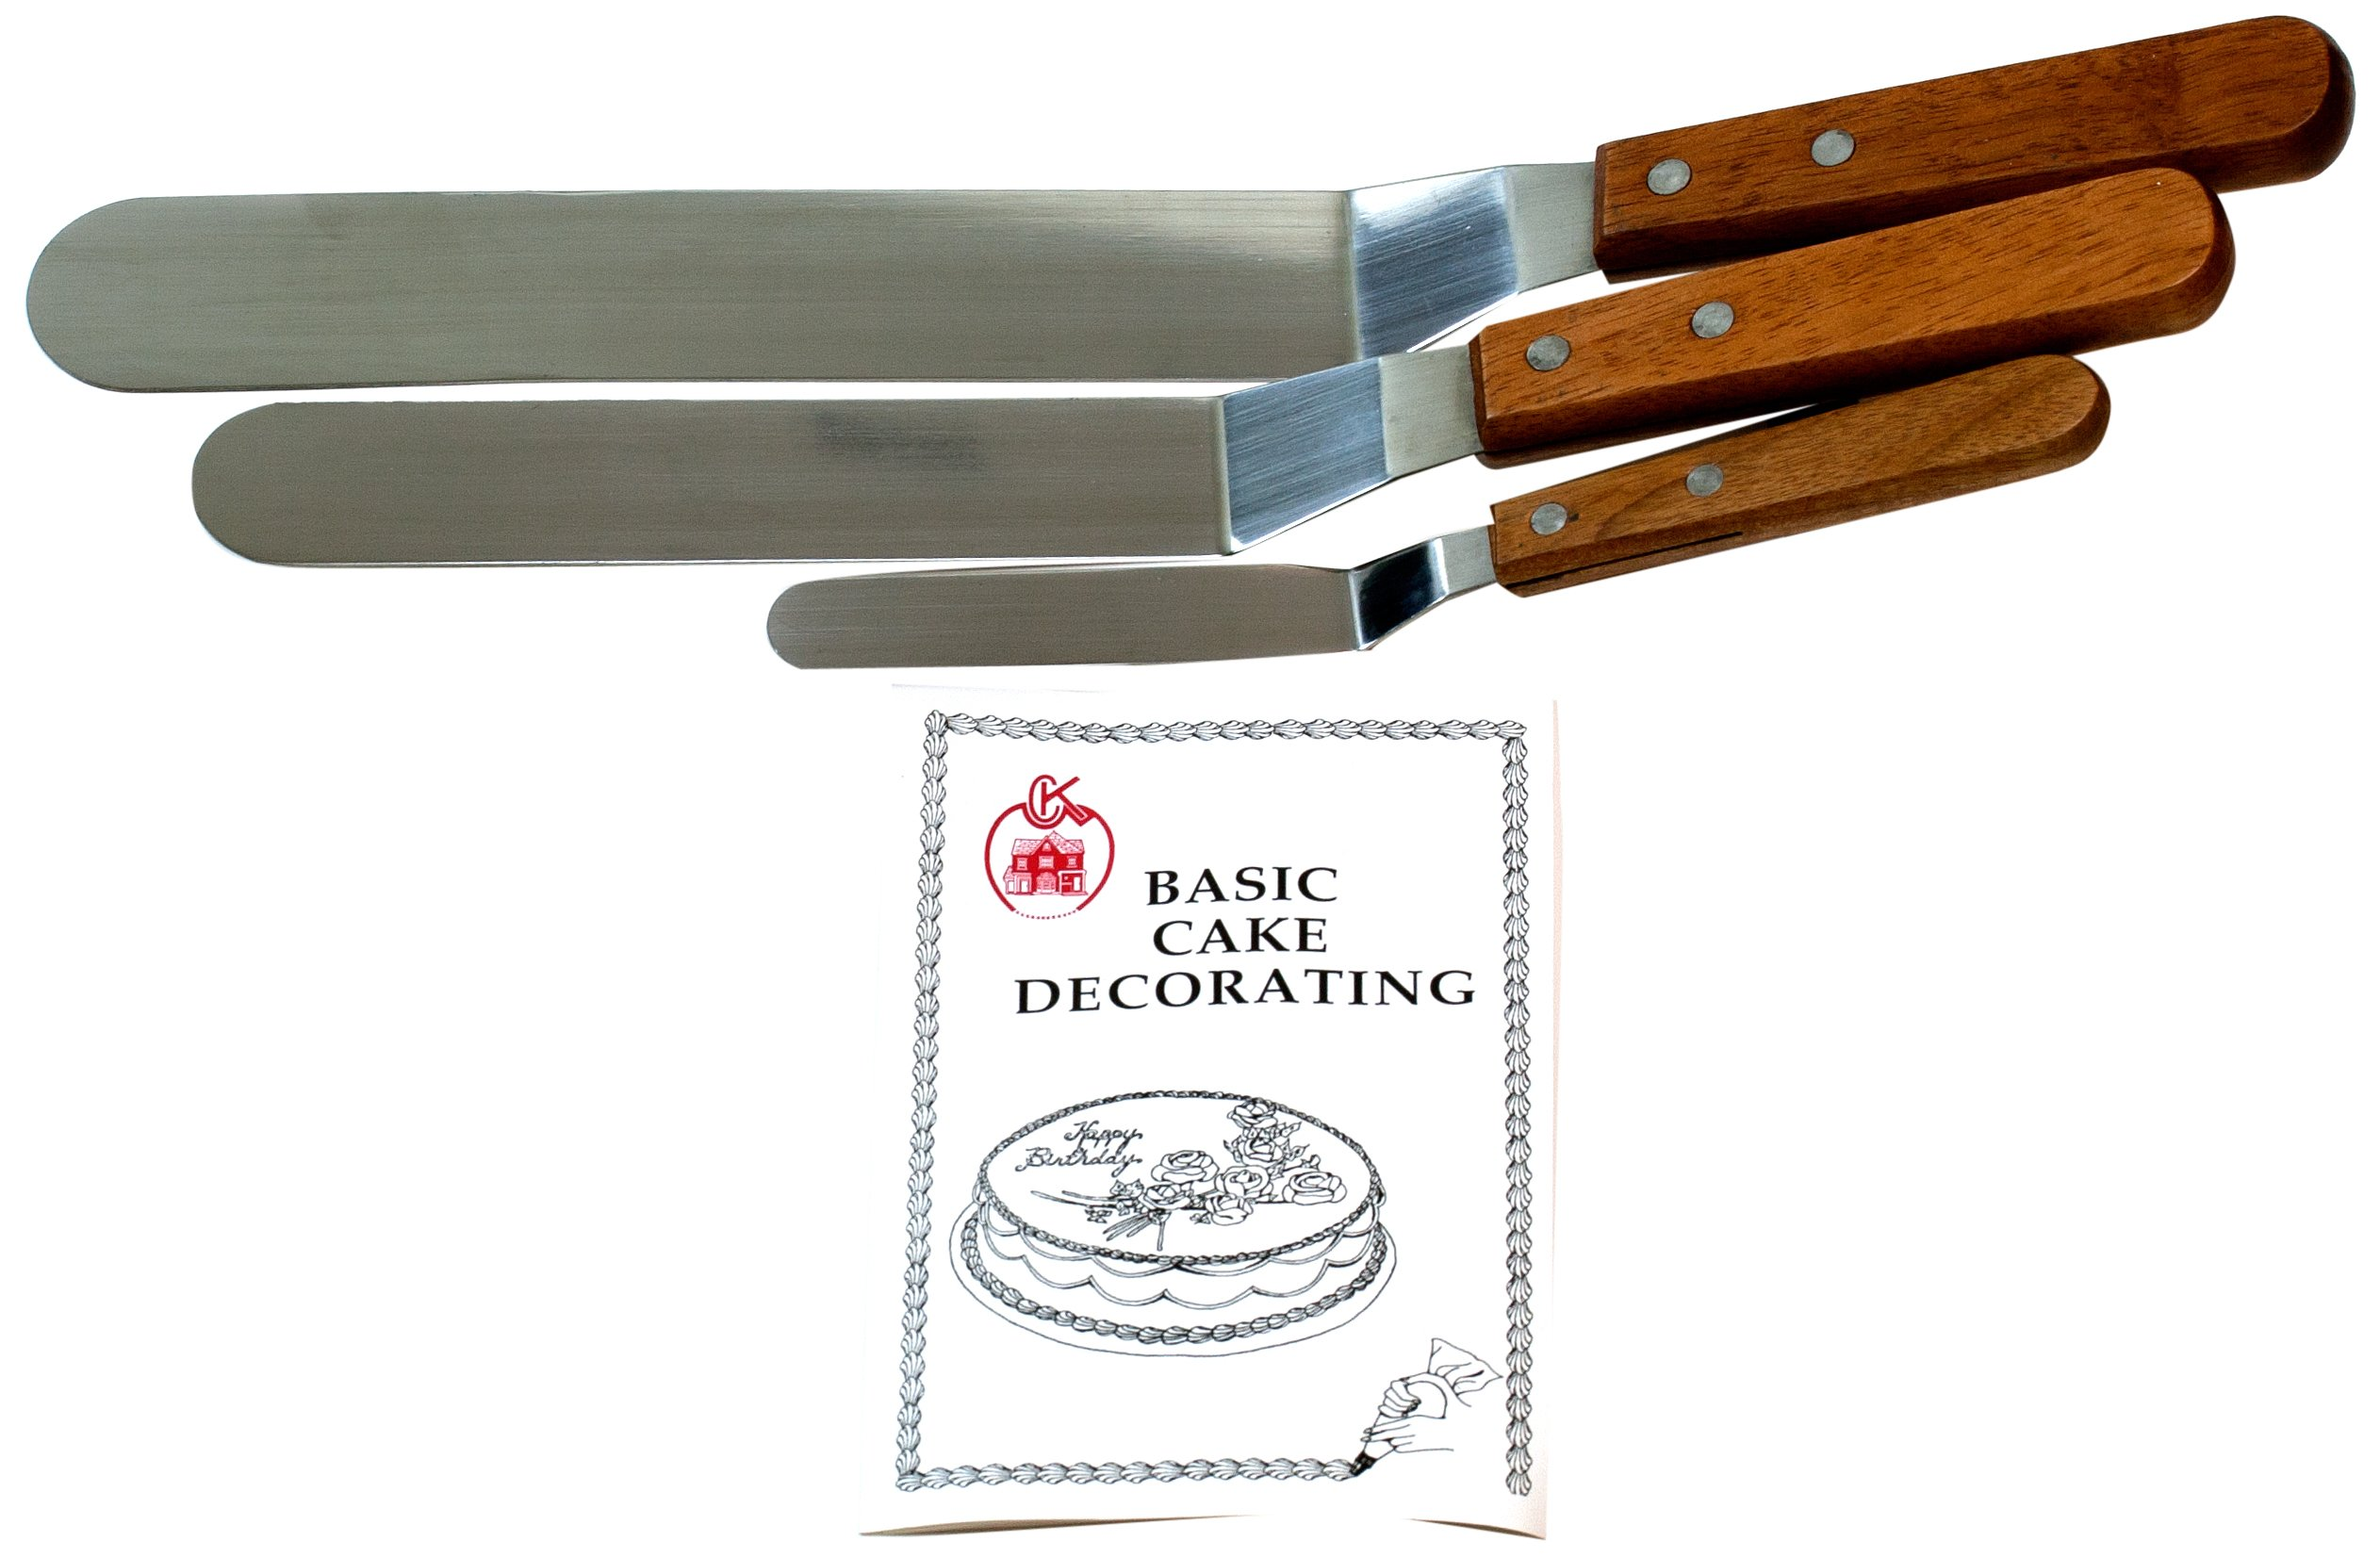 Cybrtrayd Offset Wood-Handled Cake Decorating Spatulas Plus Cake Decorating Instruction Booklet (4.25-Inch, 7.75-Inch and 9.25-Inch), Set of 3